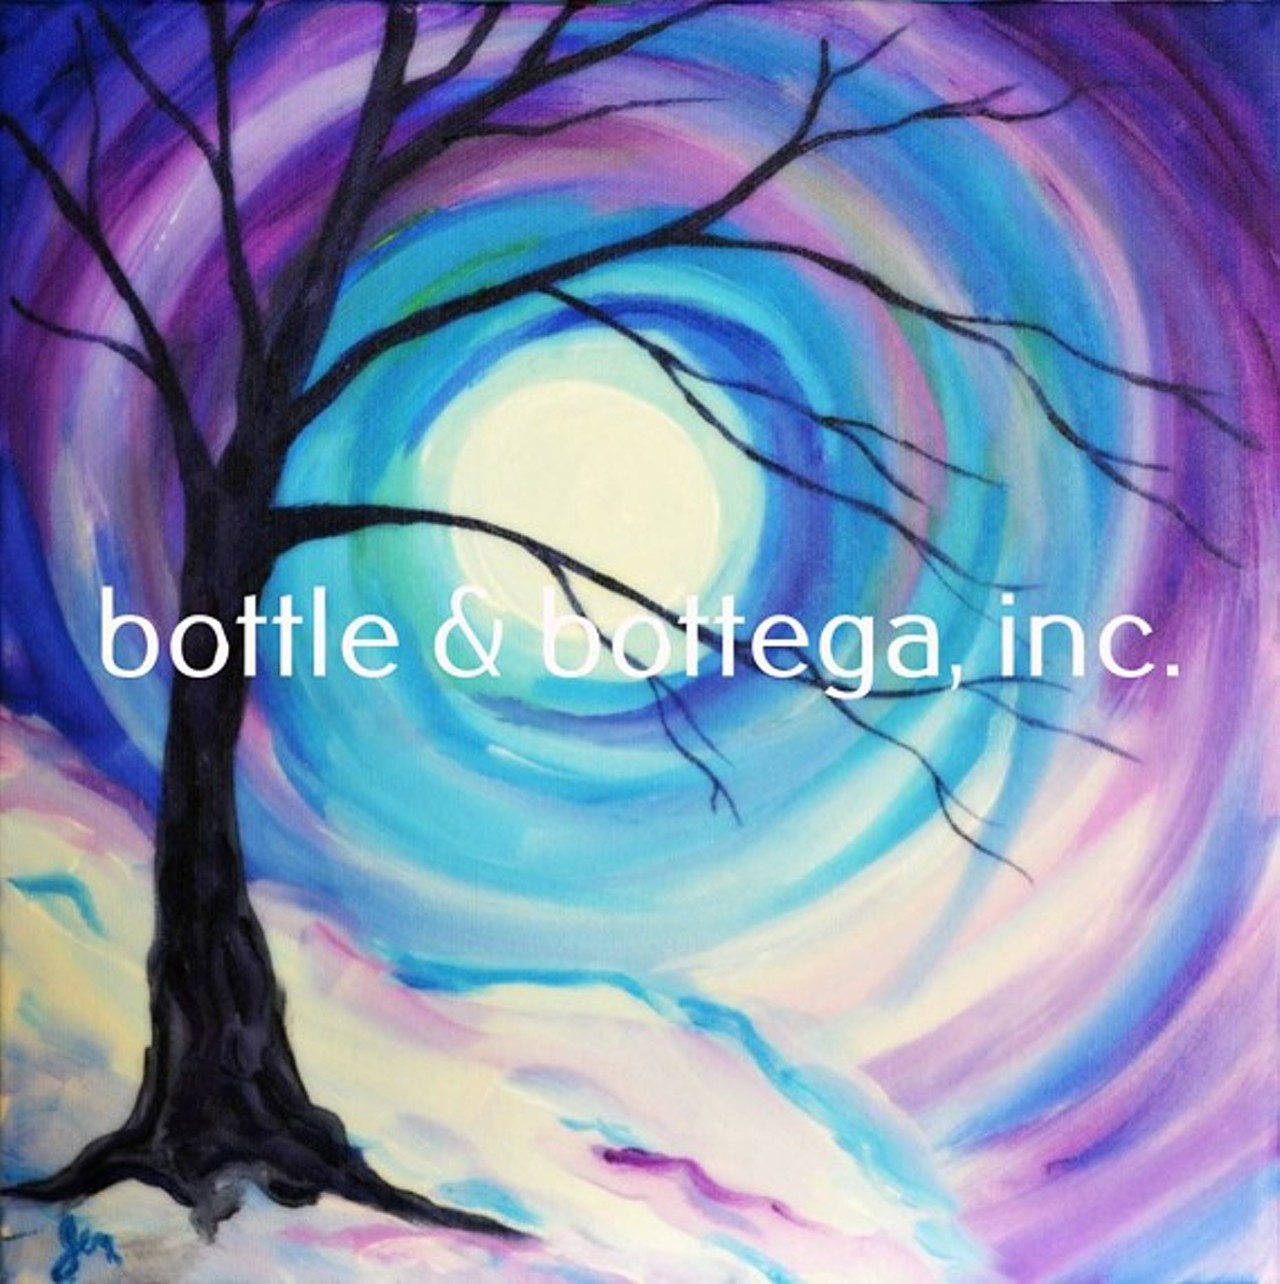 Tgif paint sip party bottle bottega creative space for Paint and sip cleveland